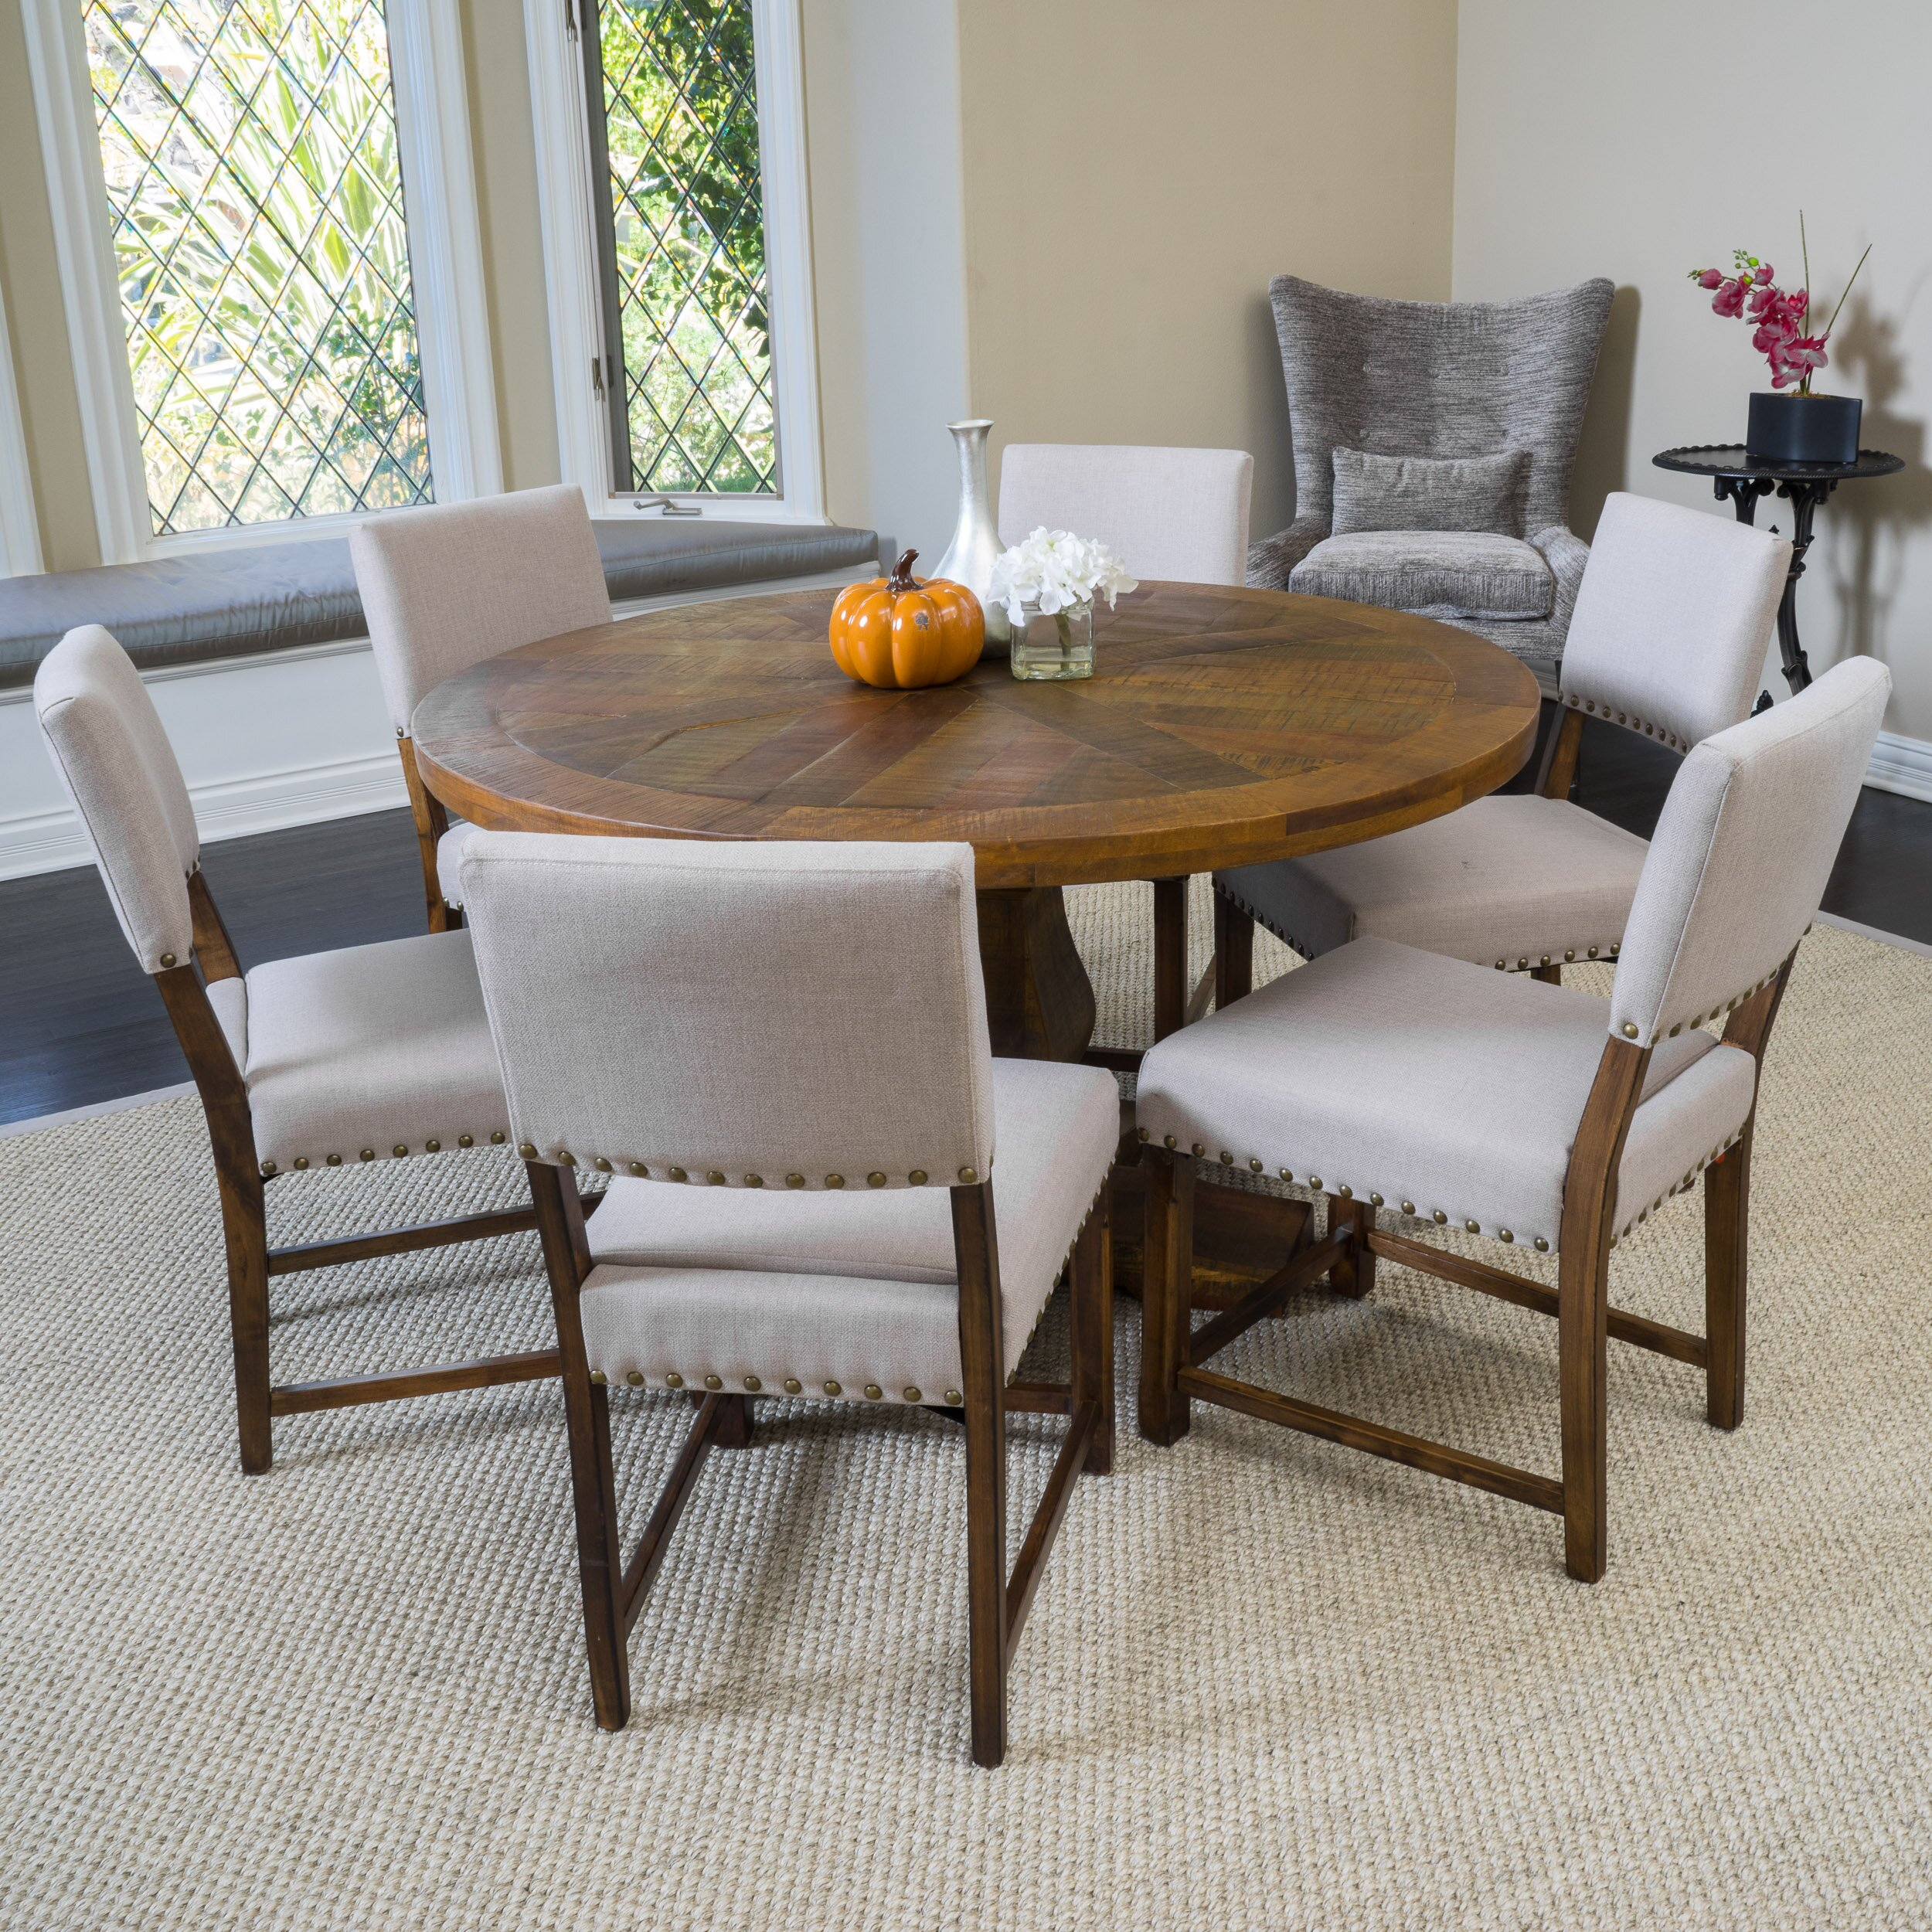 Laurel Foundry Modern Farmhouse Bradley Round Dining Table